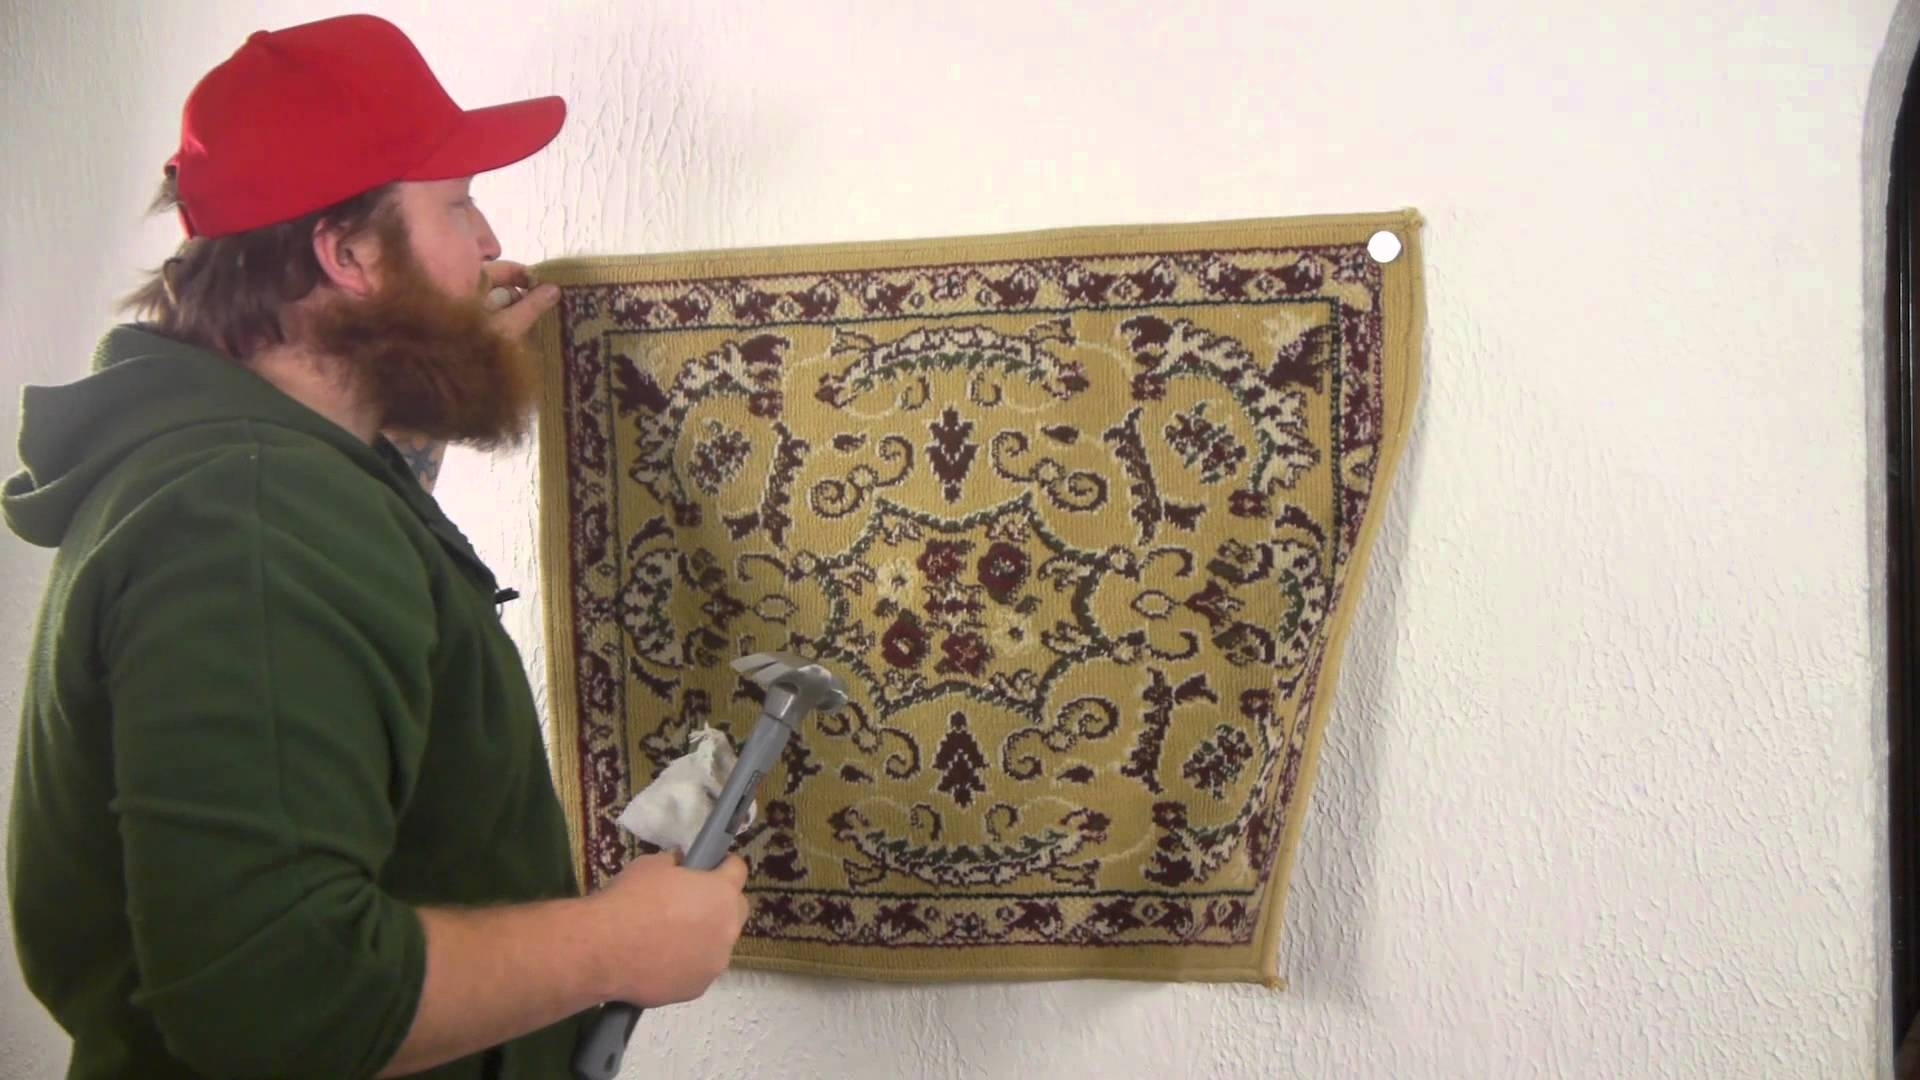 How To Attach Fabric To A Wall : Nails, Screws & Wall Hangings Inside 2017 Cloth Fabric Wall Art (Gallery 11 of 15)